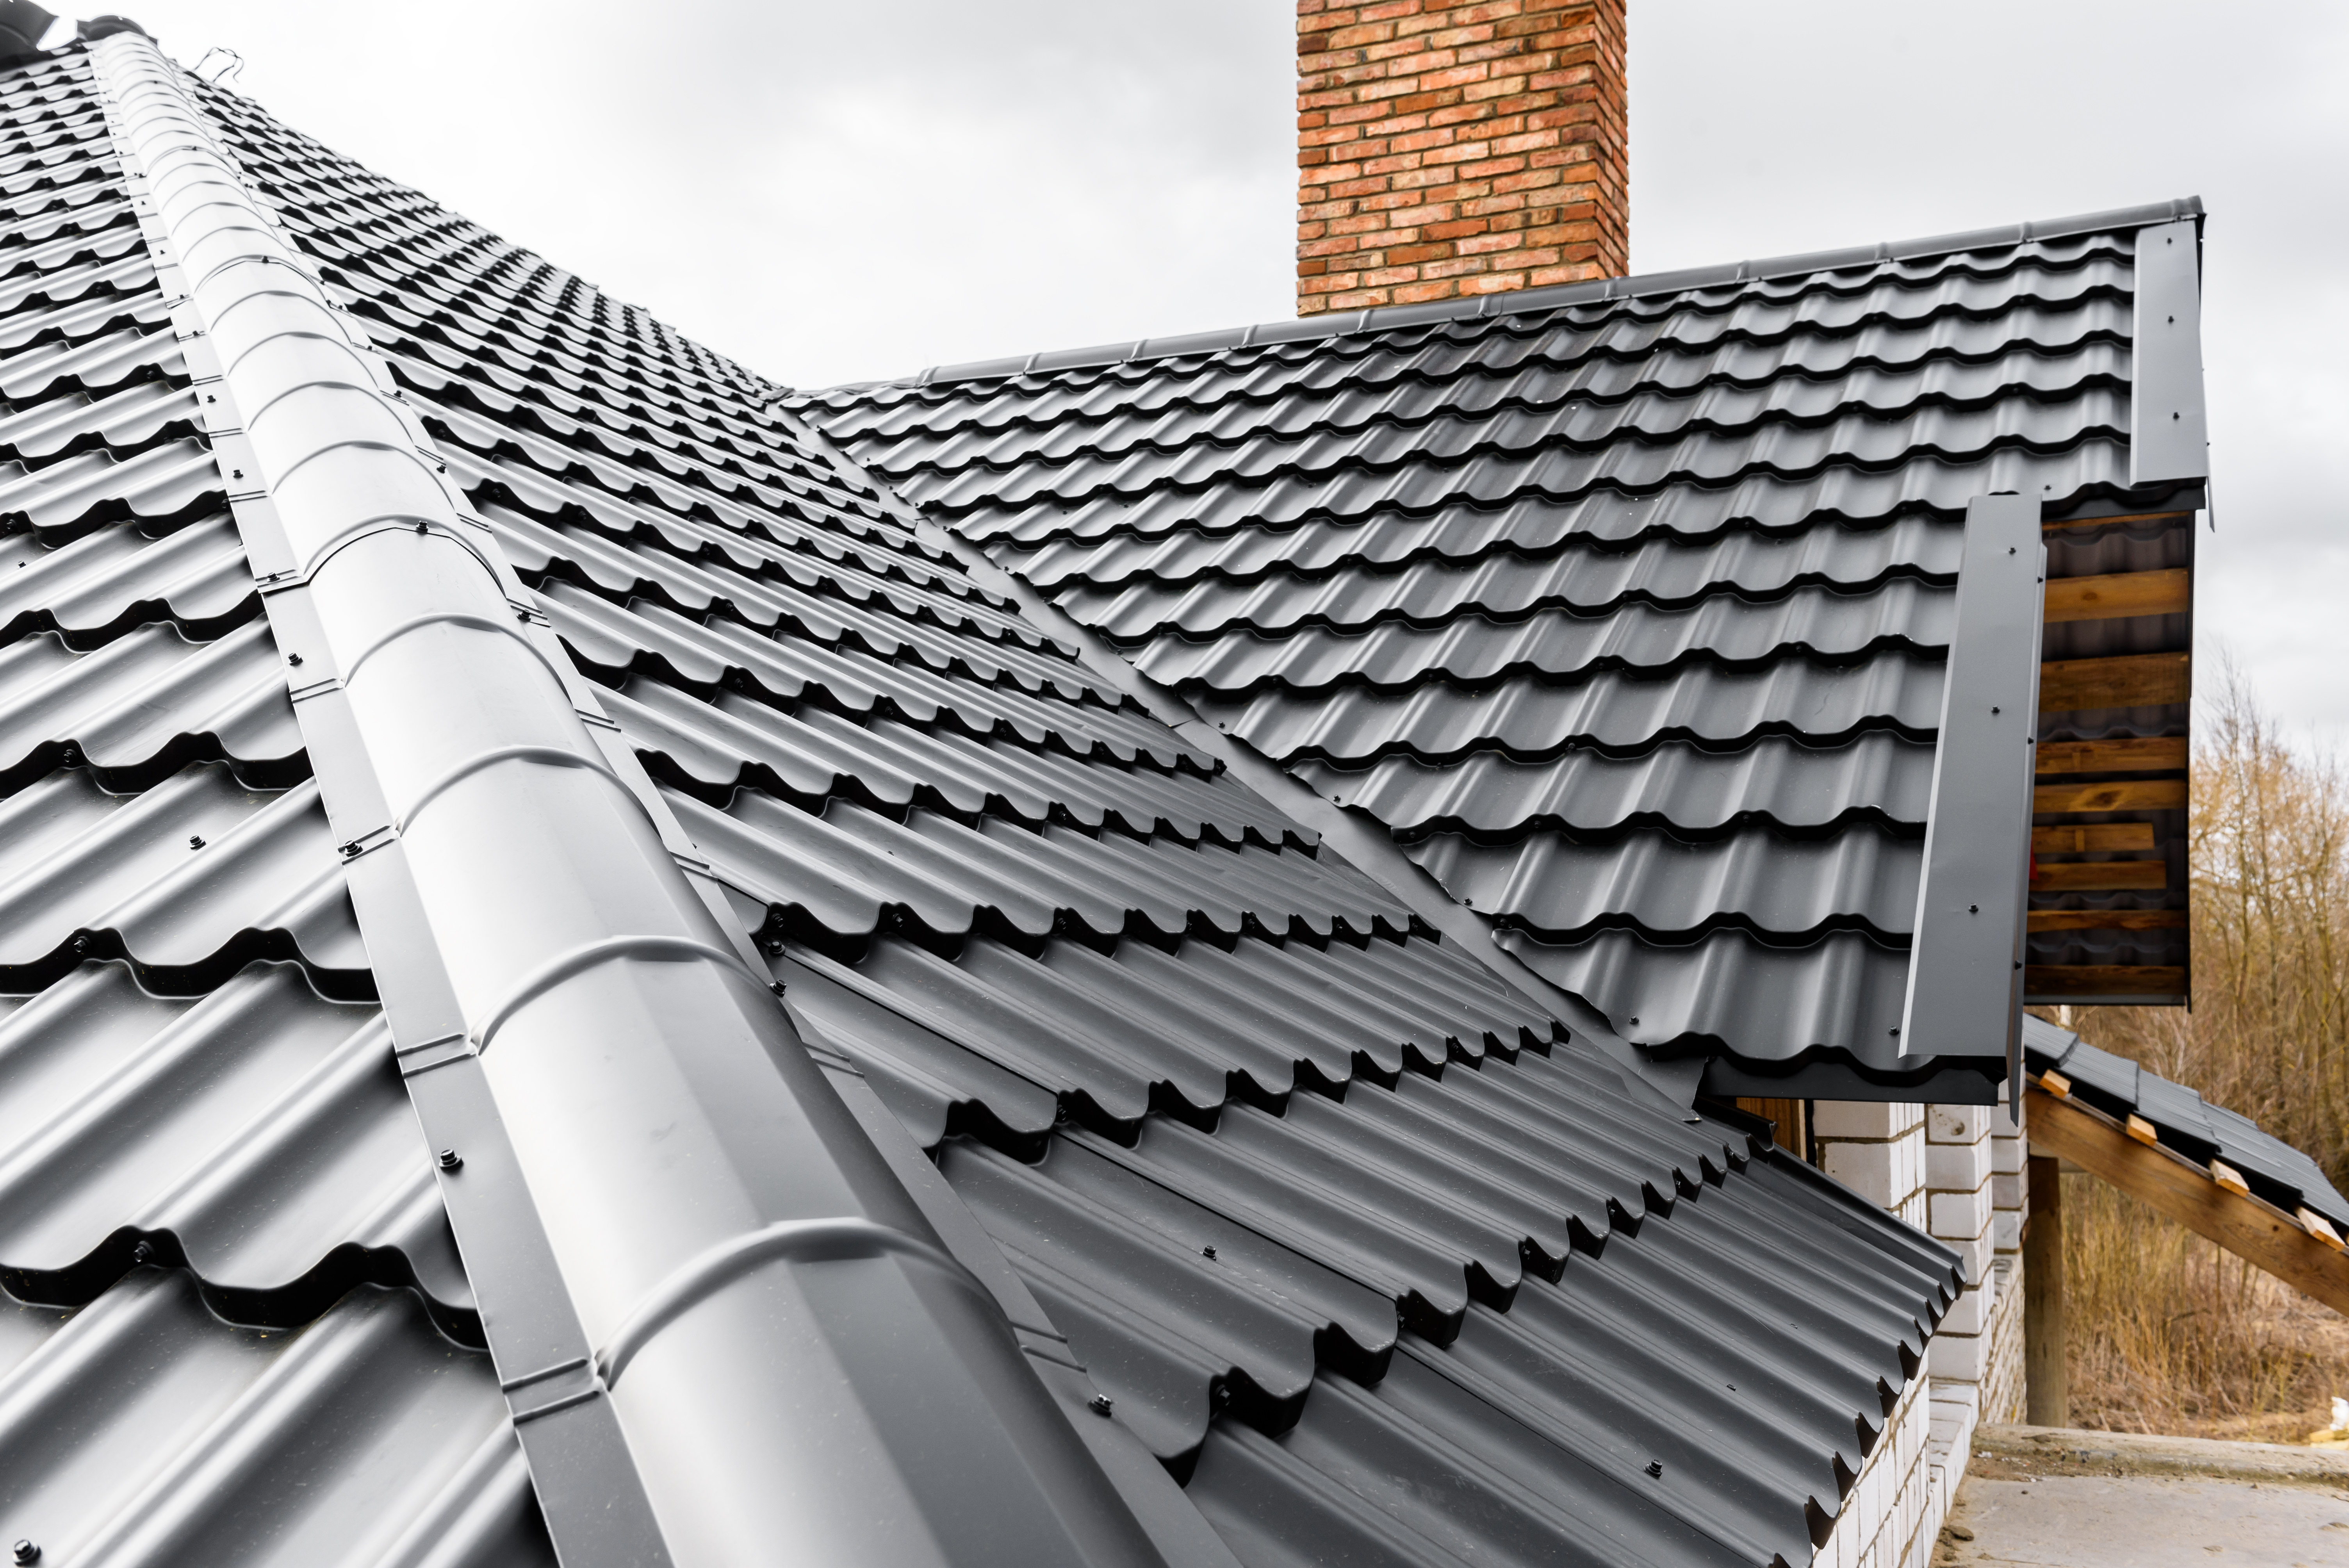 Metal Roofing's High Buy In Price Yields Cost Effective Roofing For Homeowners Willing To Make The Investment